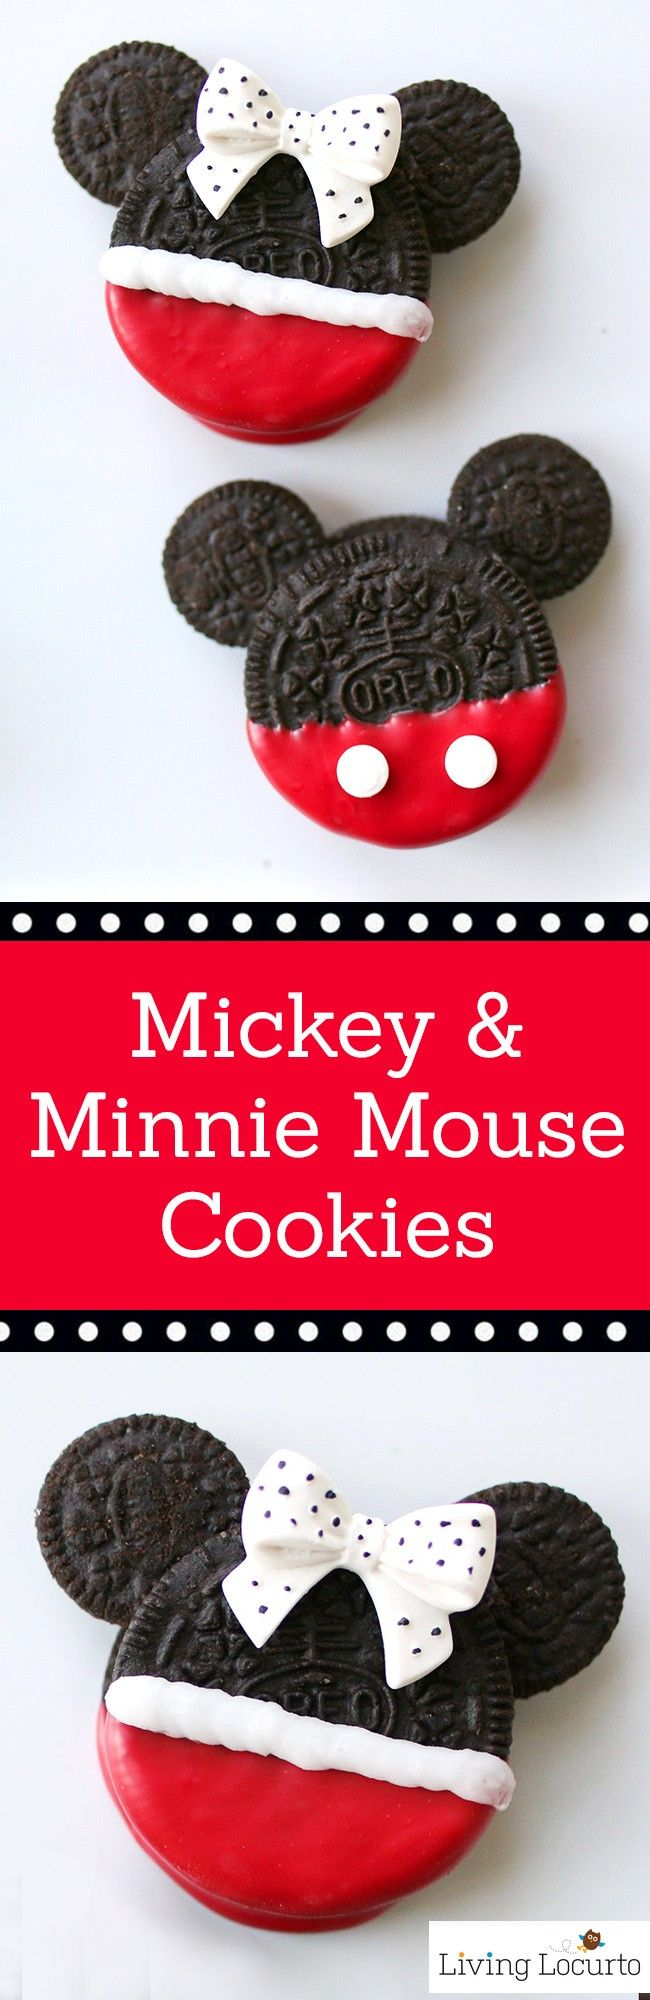 Everyone needs to have a go at making these cute Oreo Minnie and Mickey mouse cookies. xx